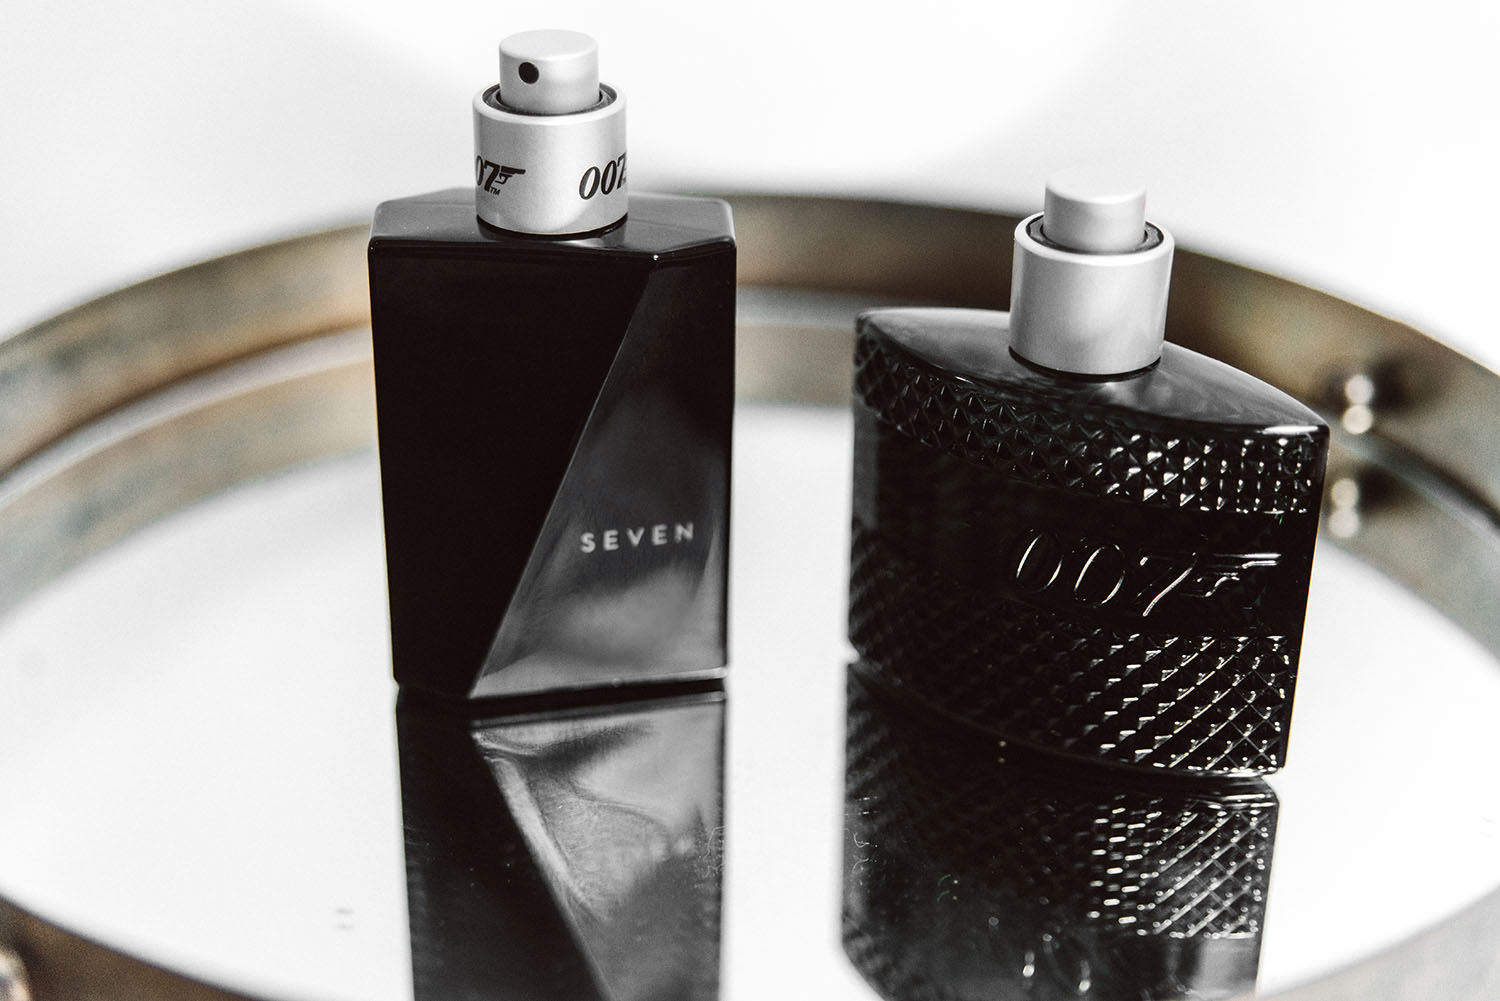 Herrparfymer / perfumes for men: James Bond 007 Seven EdT & James Bond 007 EdT